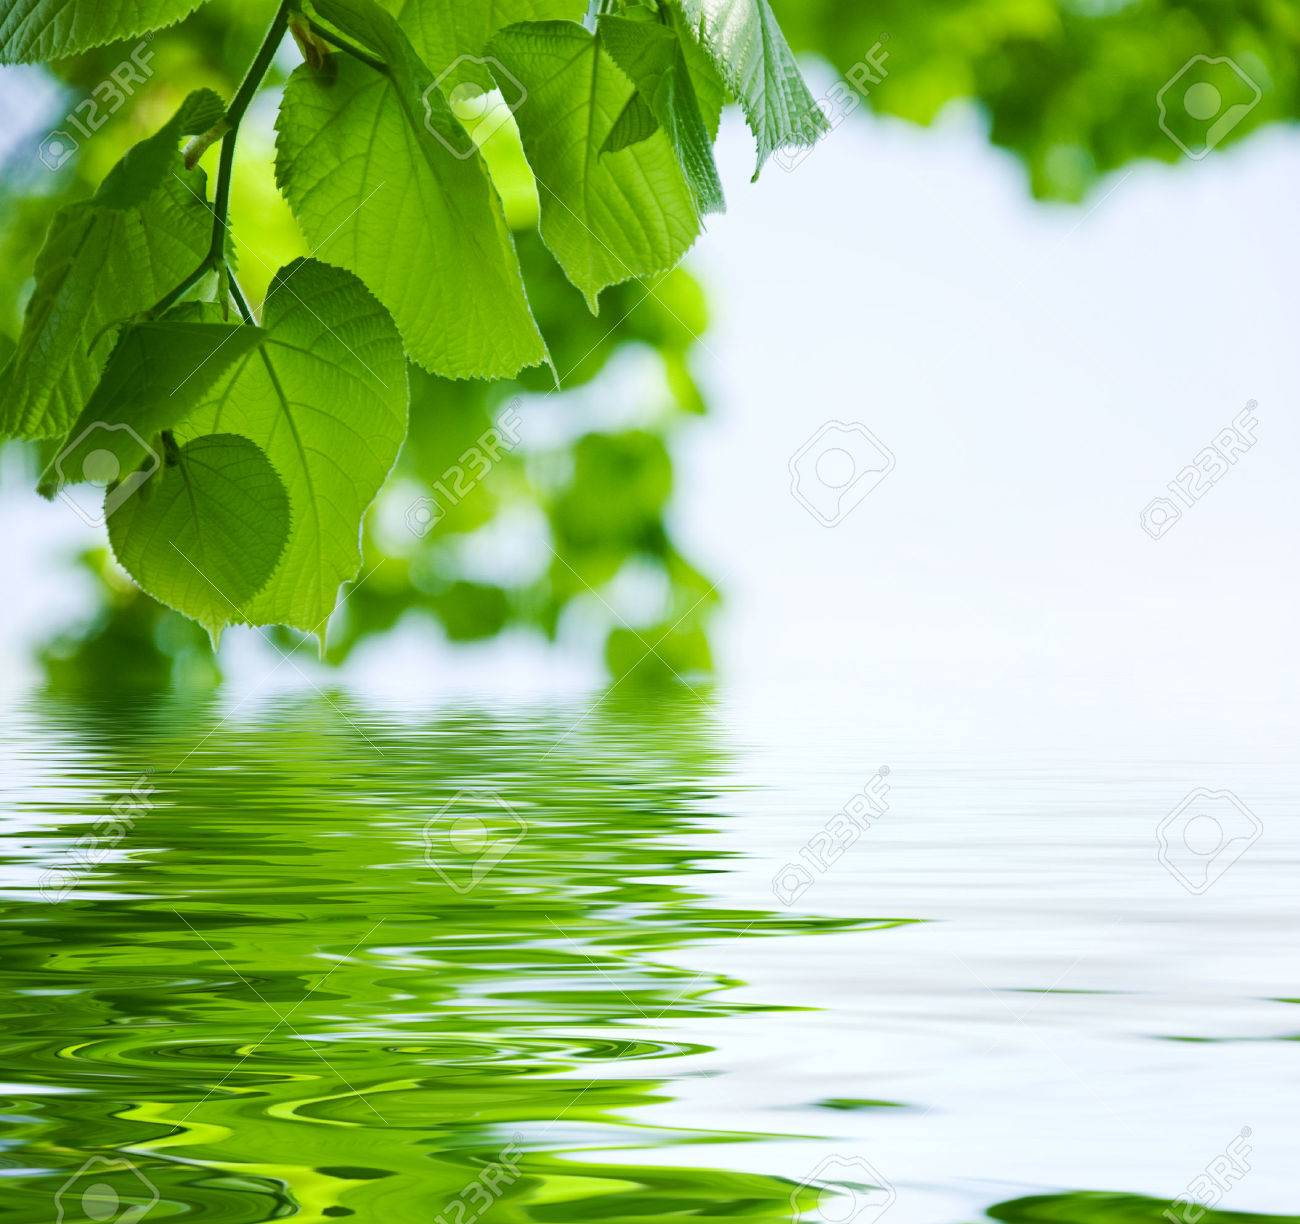 nature background - Leaves and water reflection - 29795856